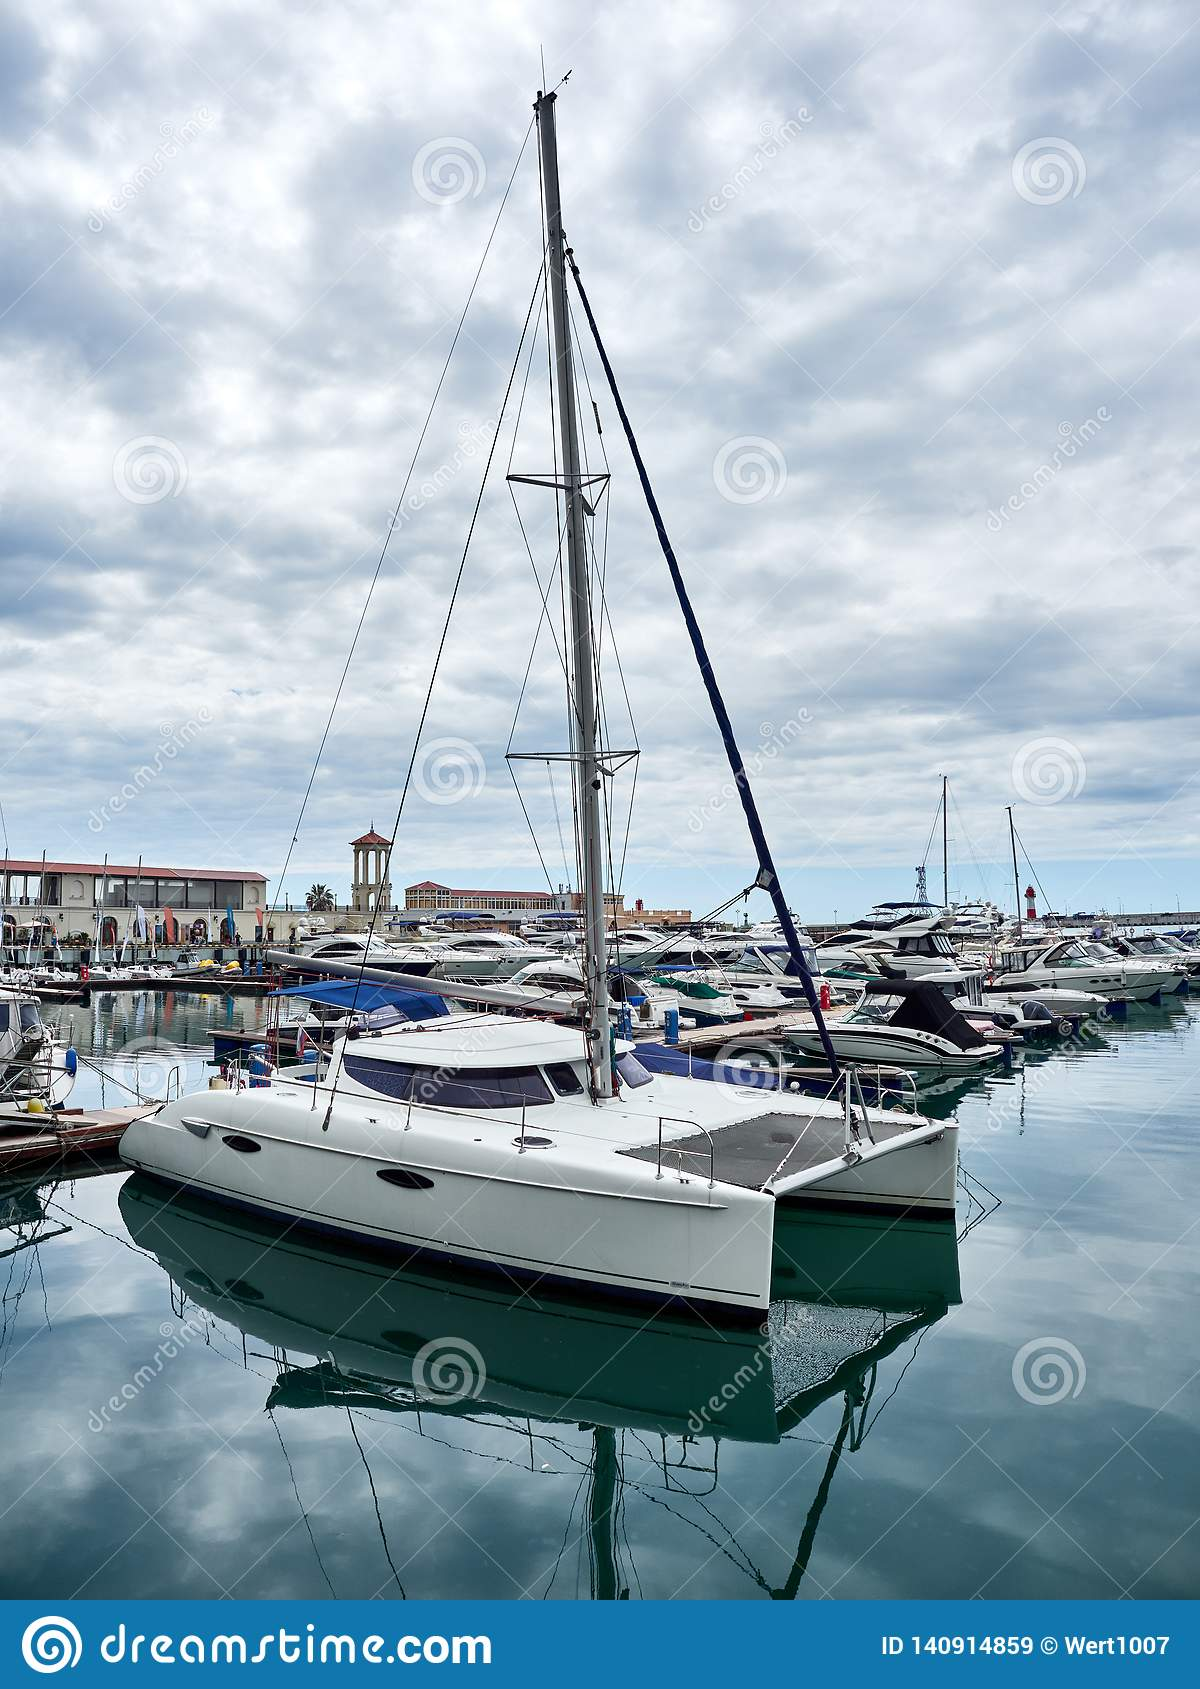 Sea yacht-catamaran docked in port